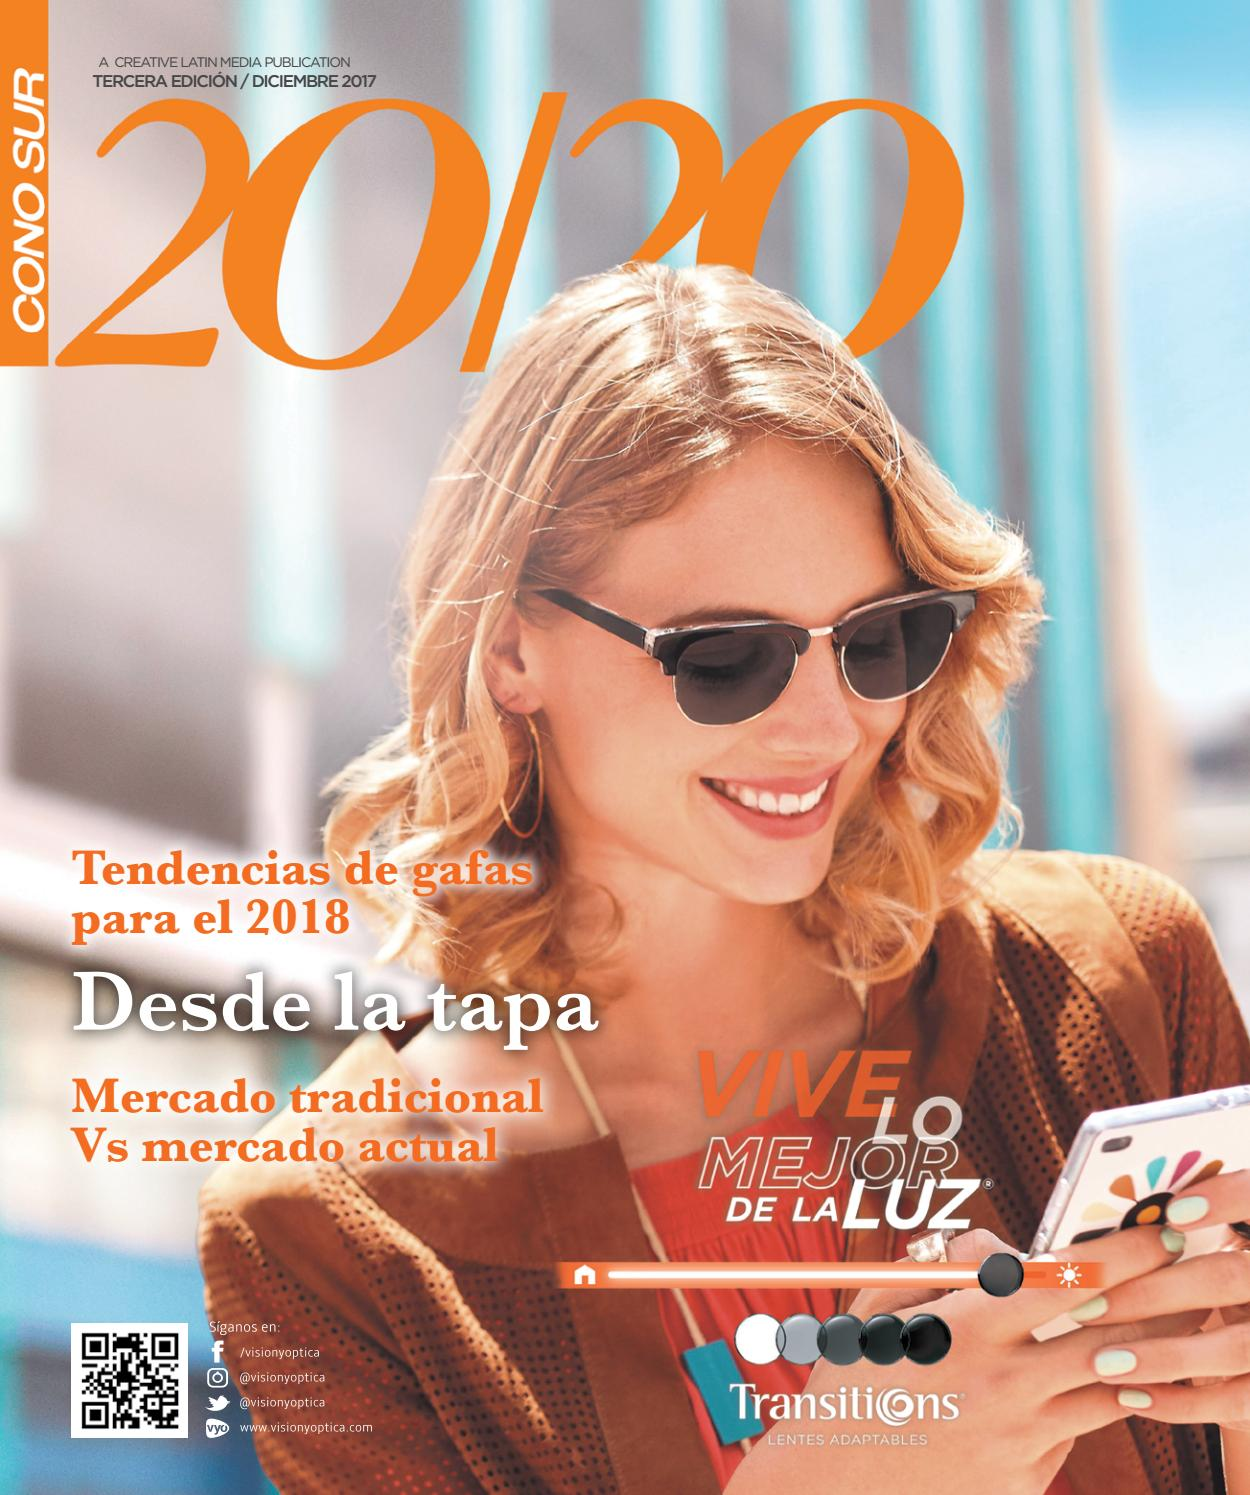 ea29422c10 Revista 20/20 Cono Sur Tercera Edición by Creative Latin Media LLC - issuu